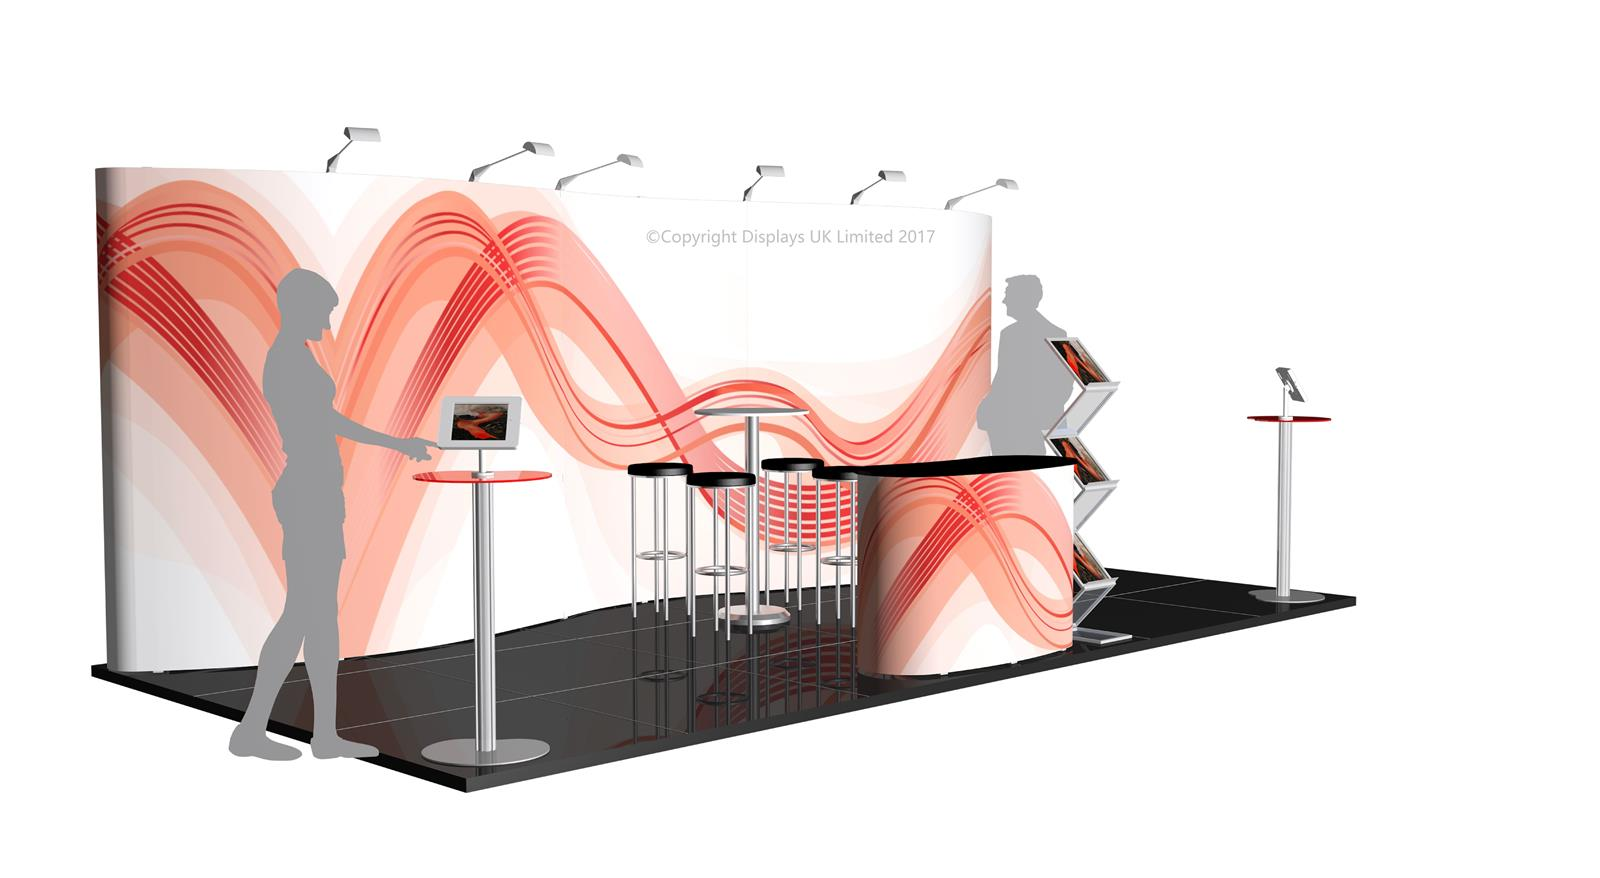 3m x 6m Linked Pop Up Exhibition Stand - Kit 37 - P6x3-3aH